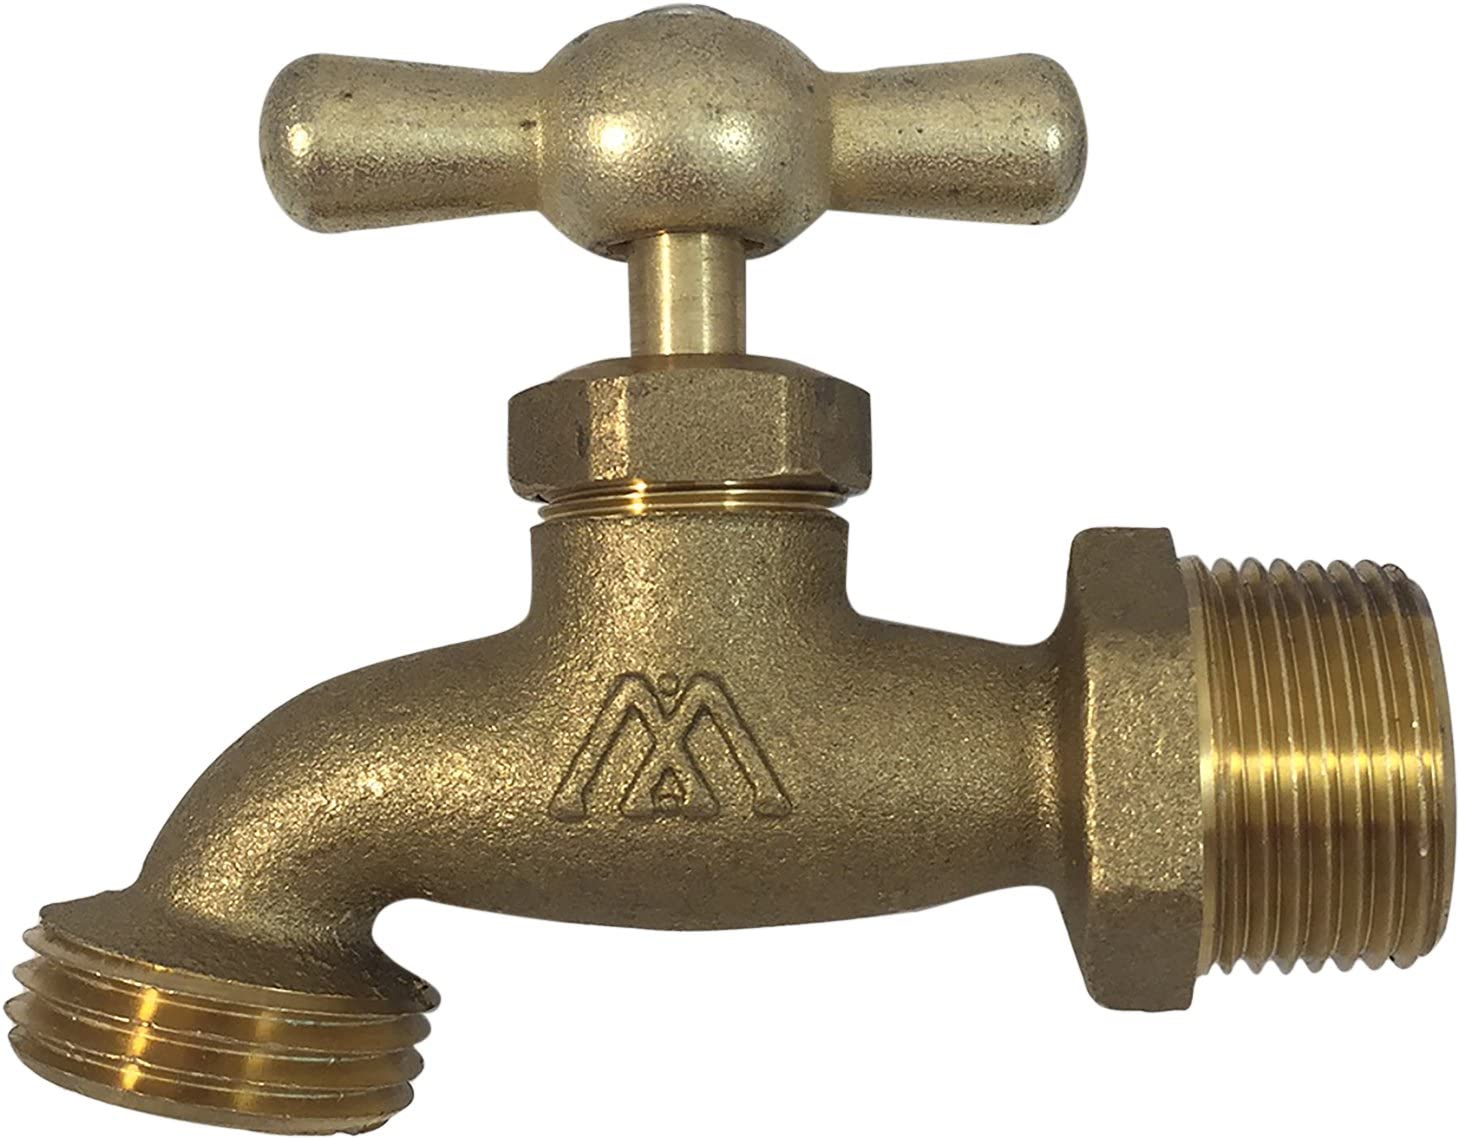 "Brass Hose Bibb Compares to Arrowhead Brass 3/4""Male NPT Inlet with 3/4 water hose outlet ideal for gardens and patios [79-112]Llave de Manguera o Nariz 3/4"""